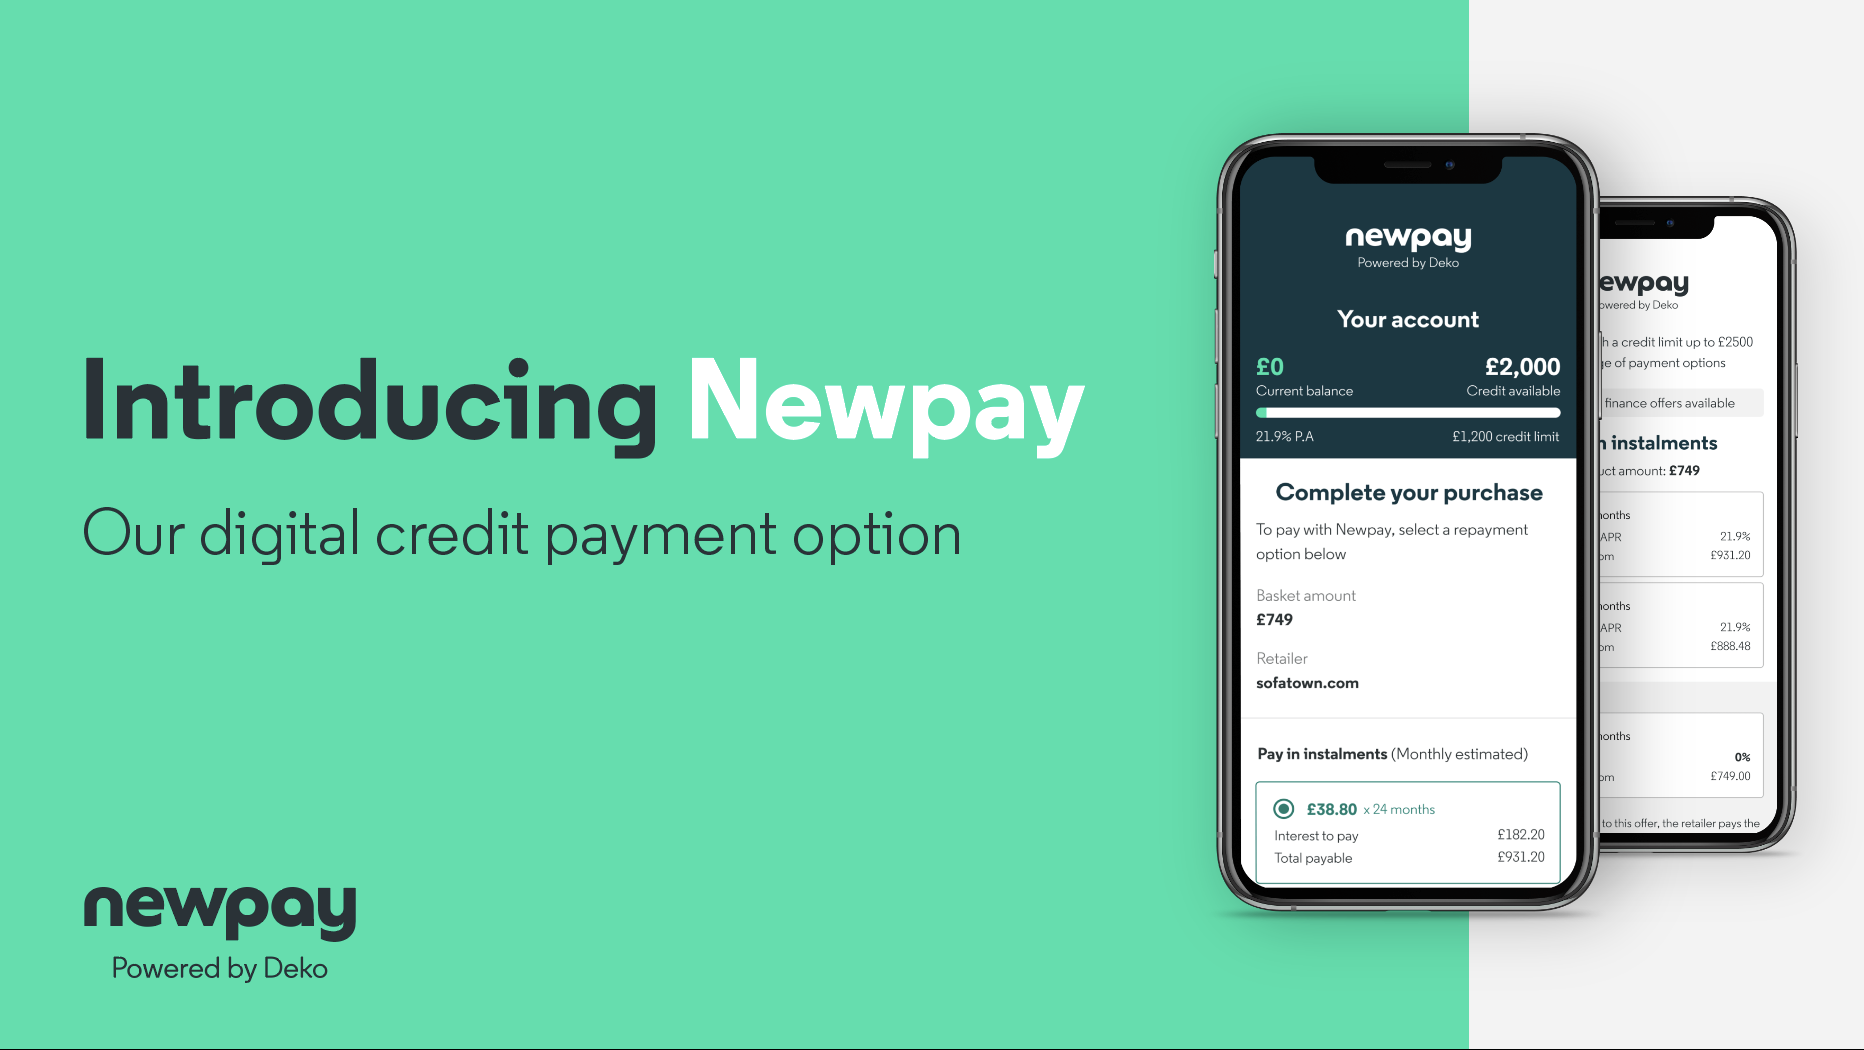 Introducing Newpay feature image